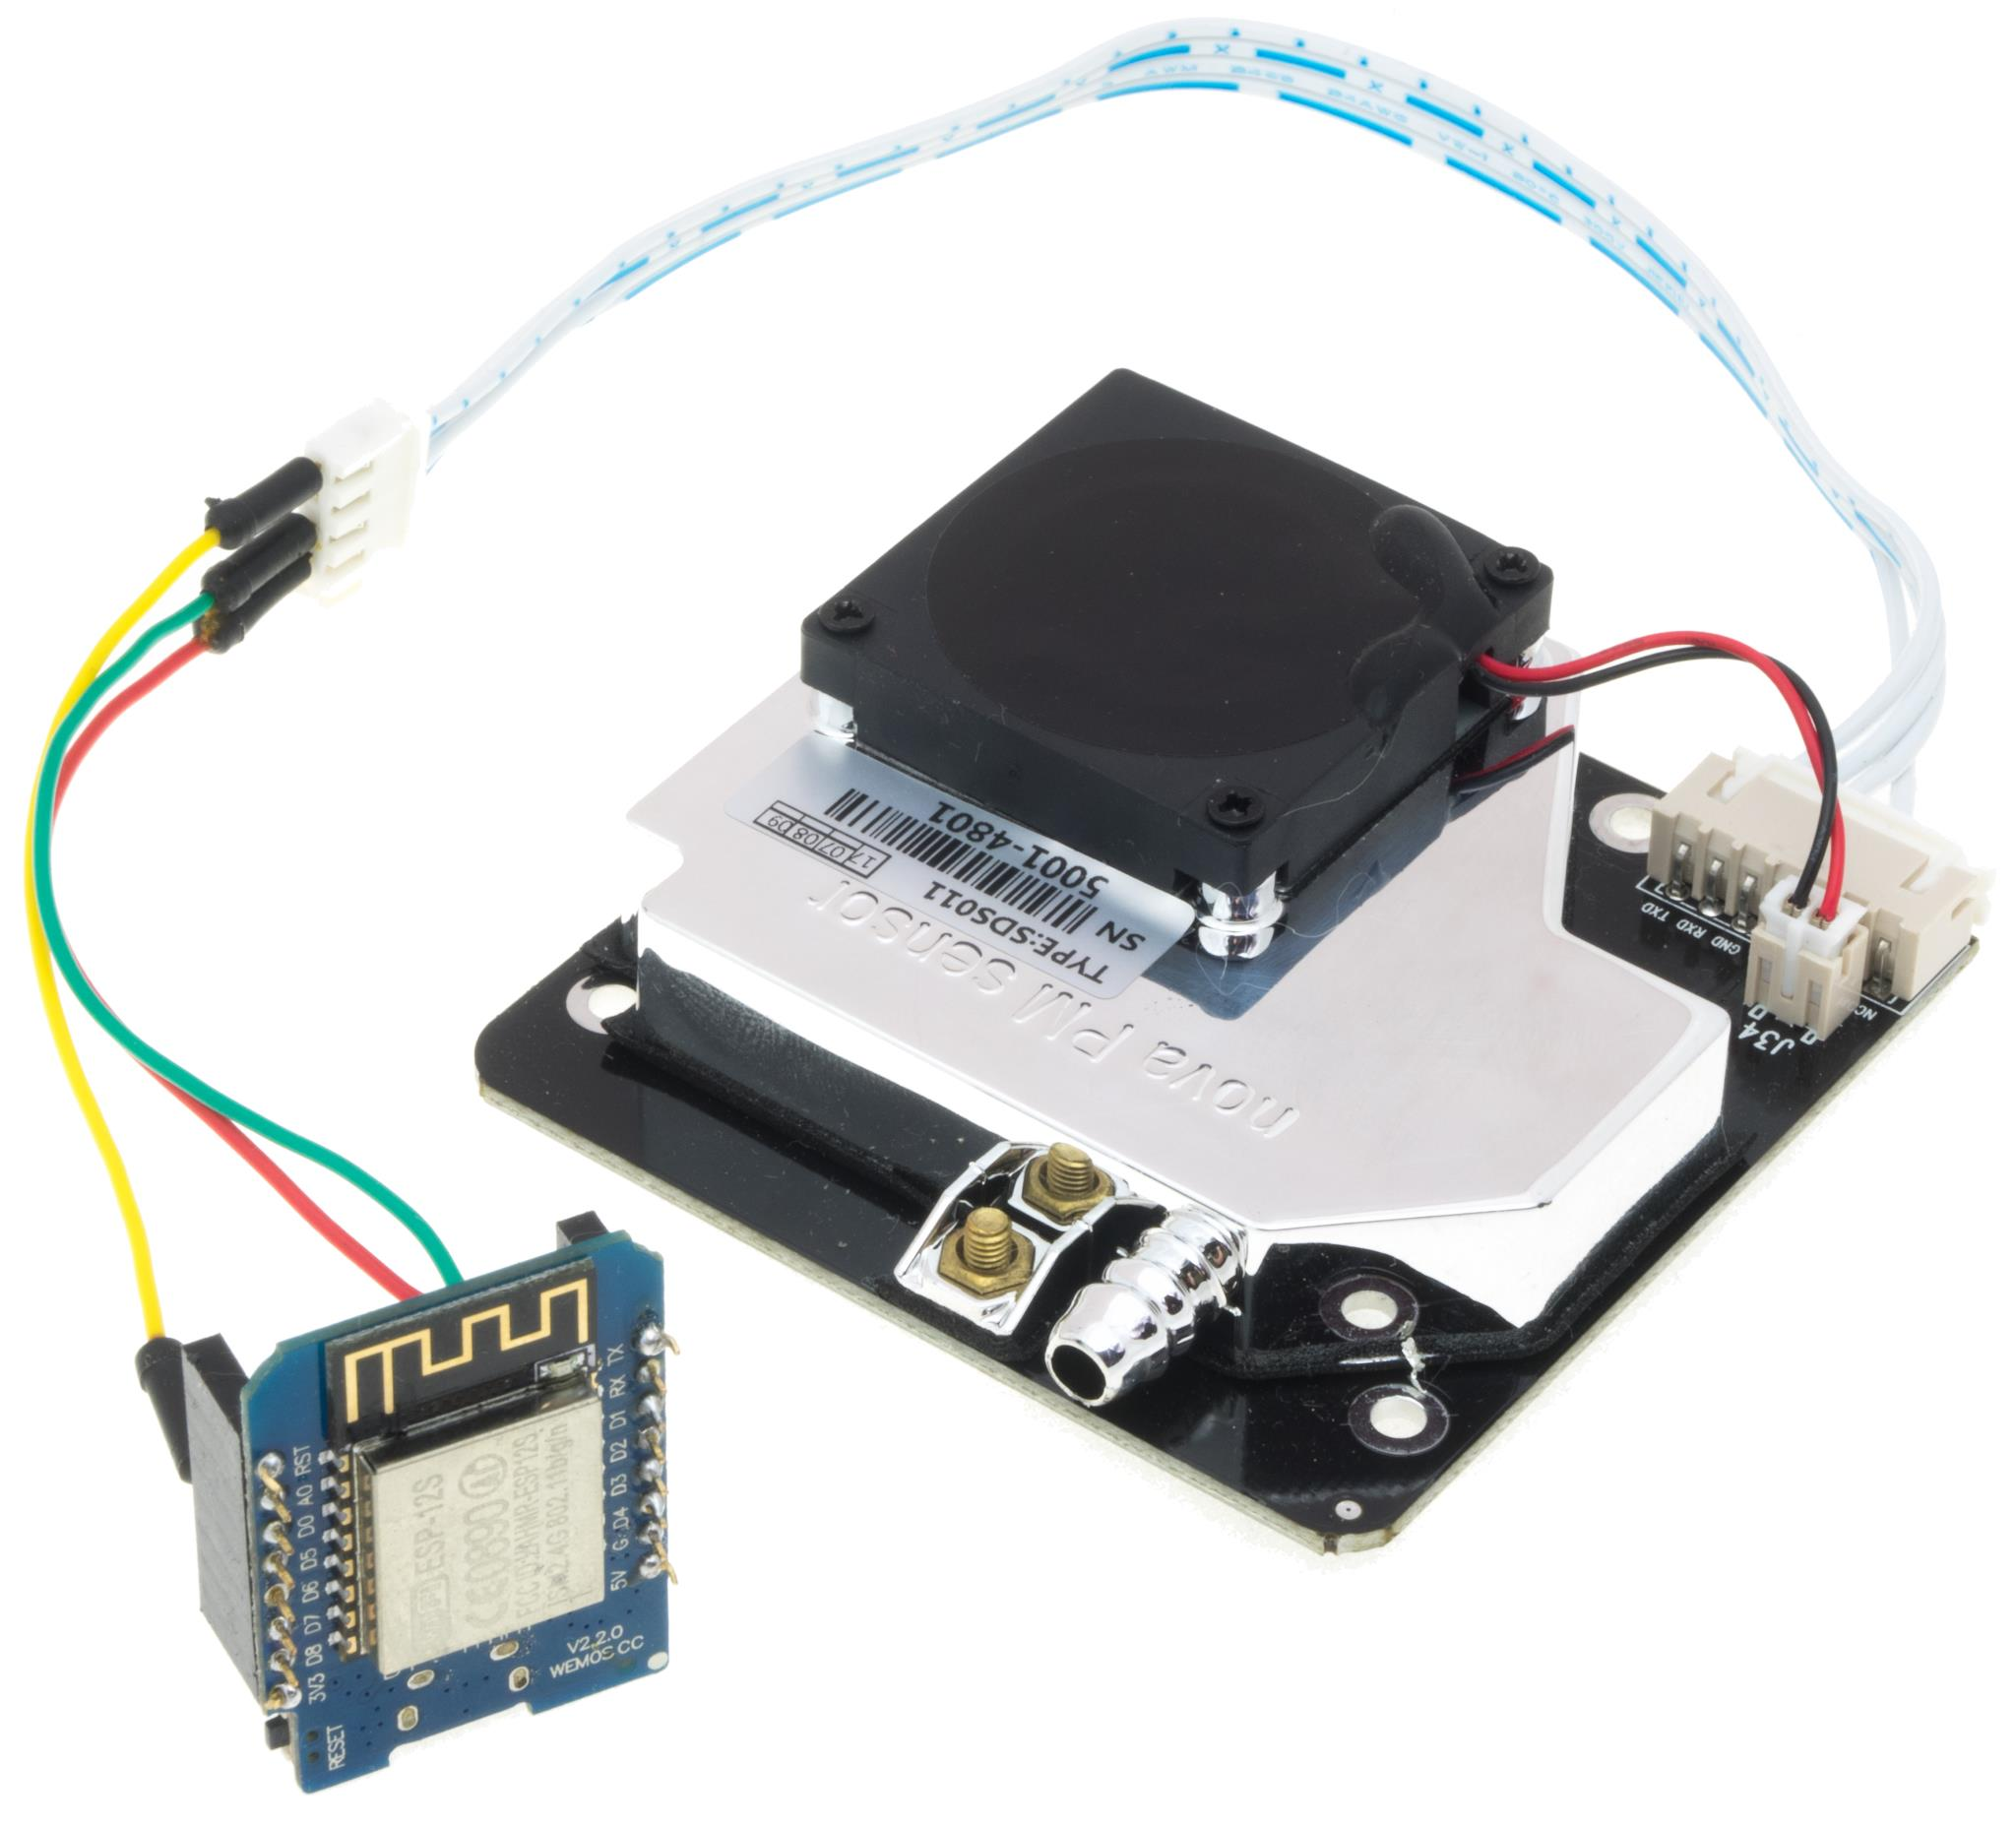 SMOG Senseor with SDS011 and ESP8266 | Let's play with the